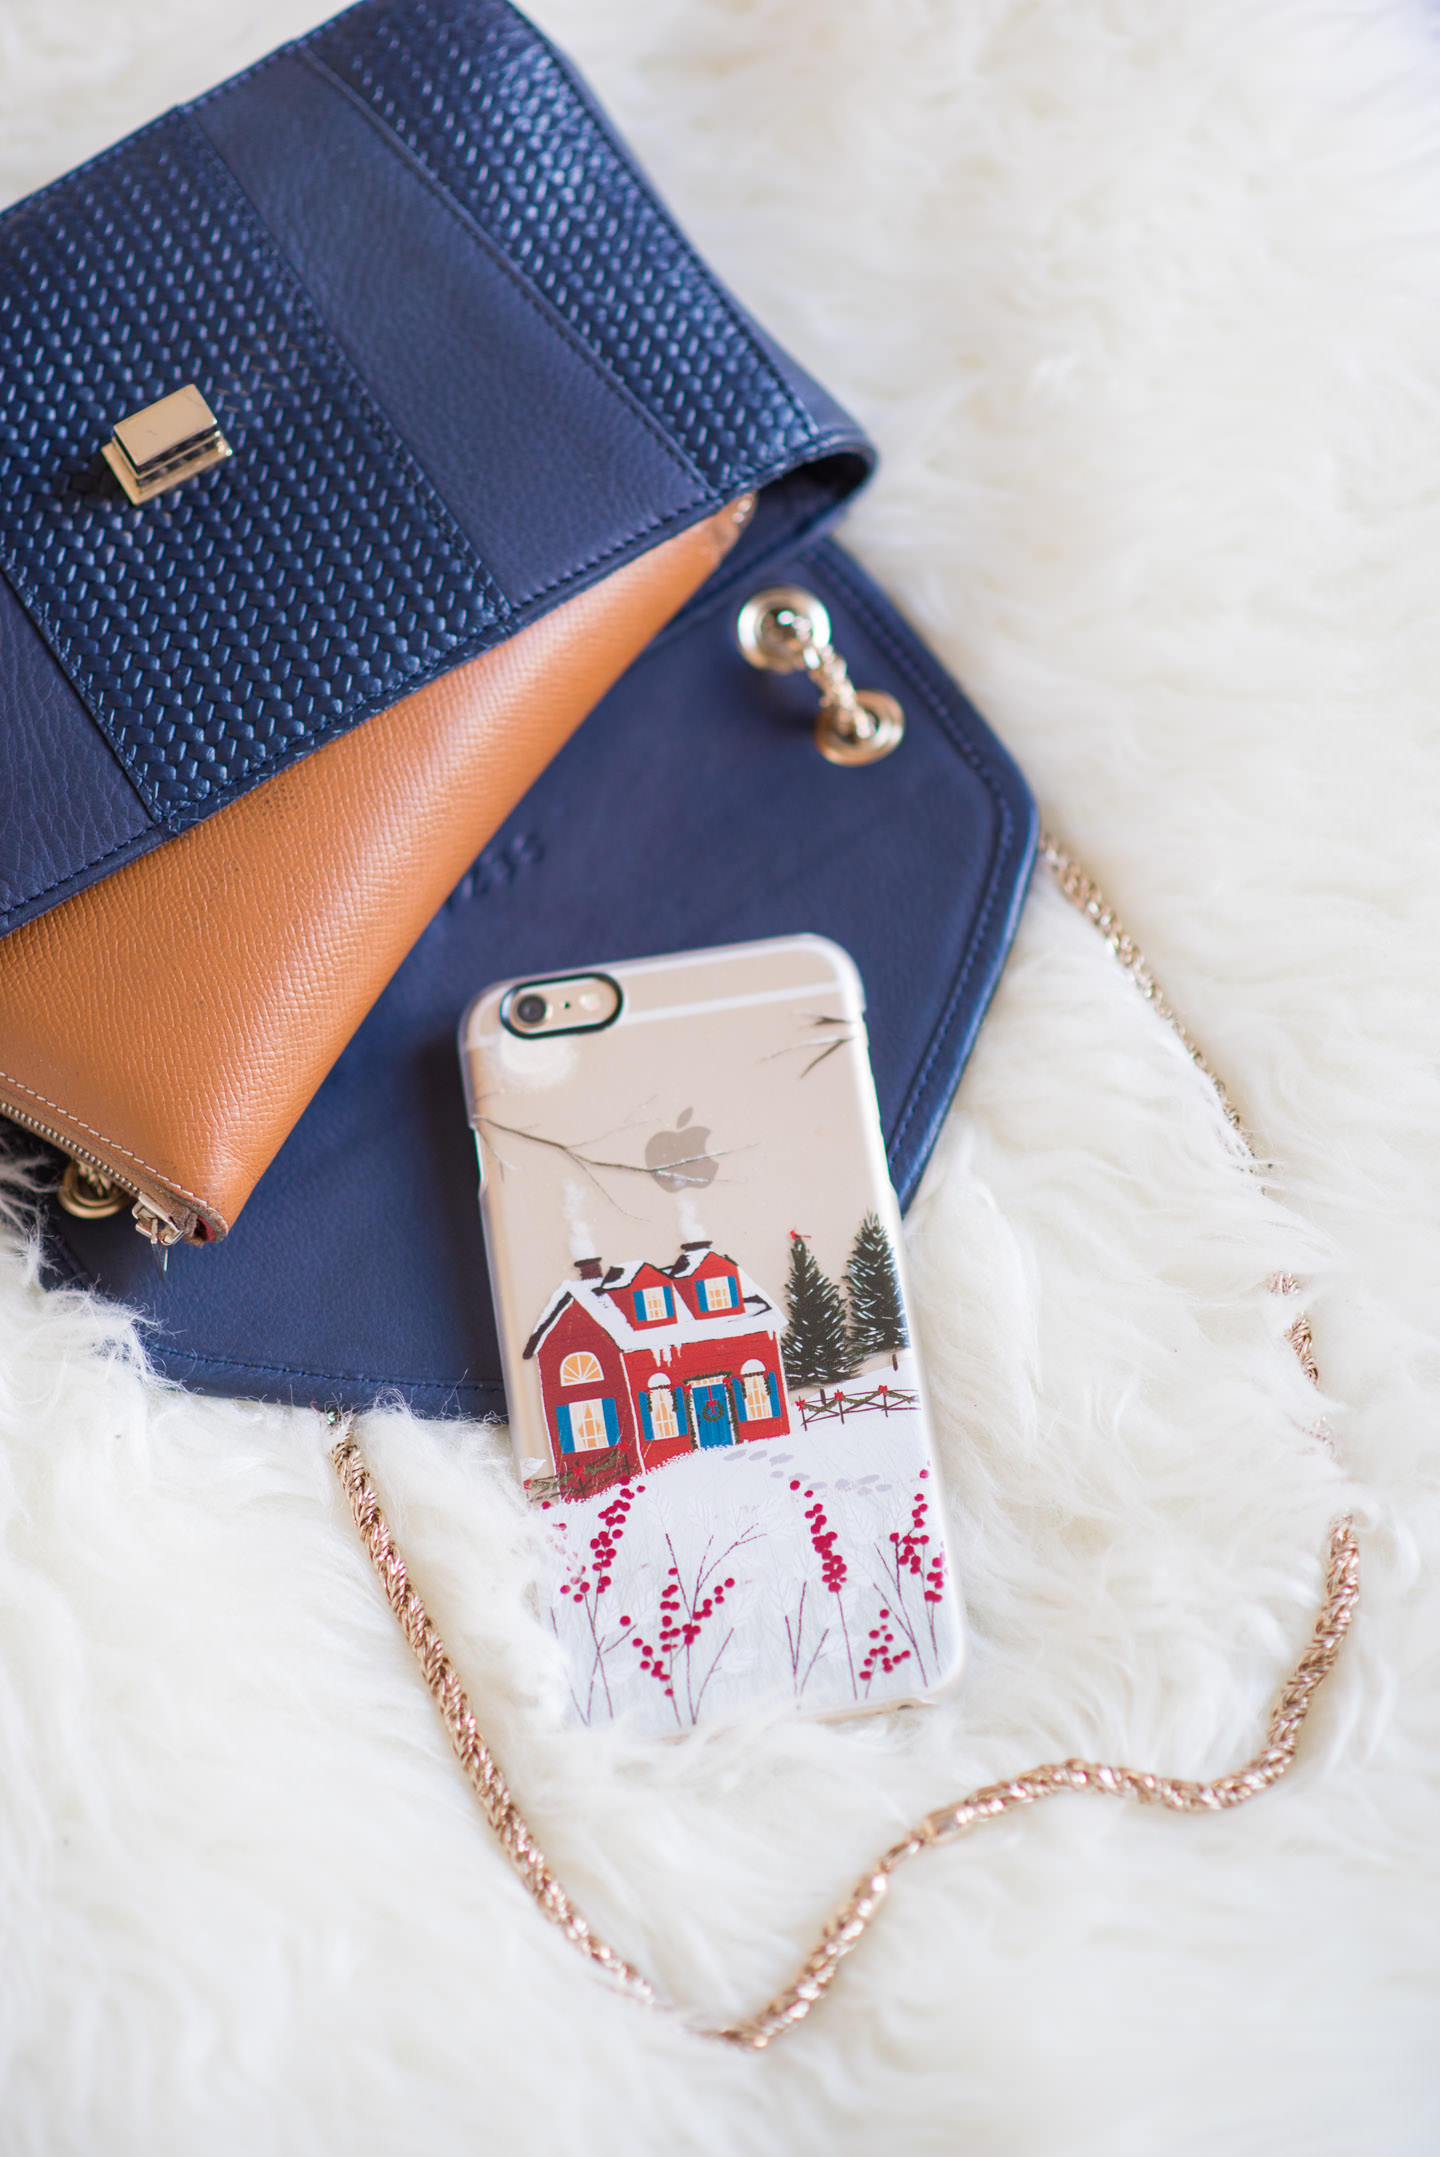 Blog-Mode-And-The-City-Lifestyle-Cinq-Petites-Choses-161-coque-casetify